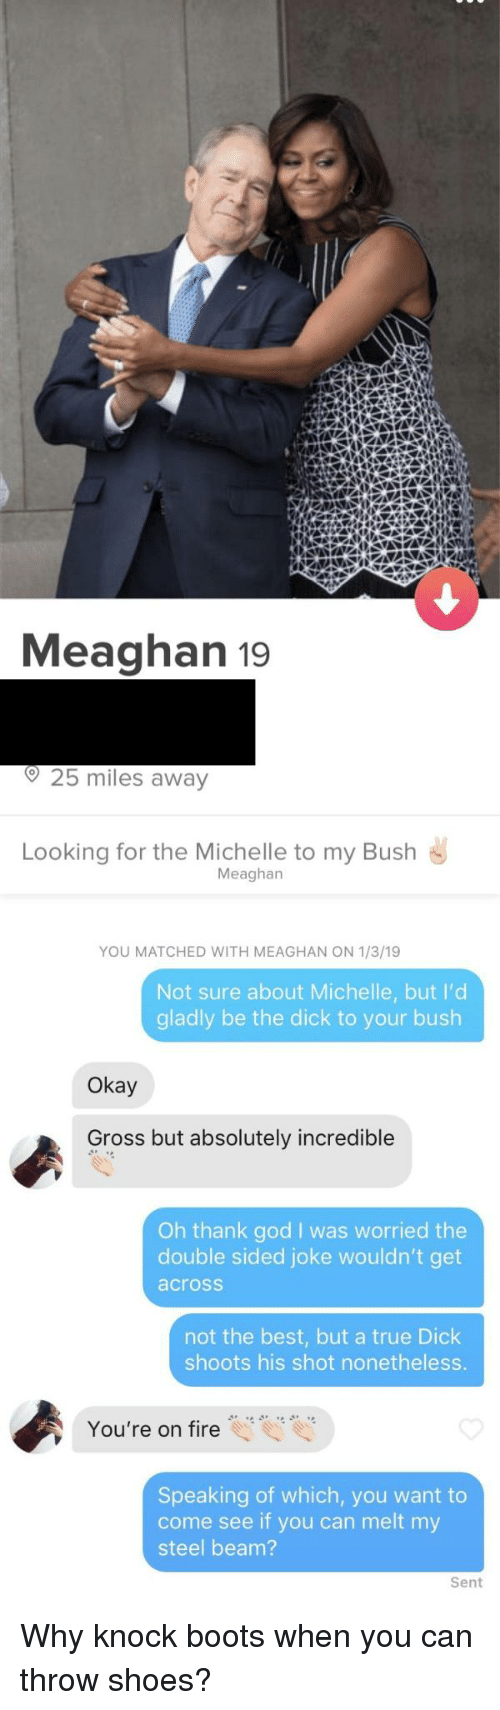 the double: Meaghan 19  o25 miles away  Looking for the Michelle to my Bush  Meaghan  YOU MATCHED WITH MEAGHAN ON 1/3/19  Not sure about Michelle, but I'd  gladly be the dick to your bush  Okay  Gross but absolutely incredible  Oh thank god I was worried the  double sided joke wouldn't get  across  not the best, but a true Dick  shoots his shot nonetheless.  You're on fire  Speaking of which, you want to  come see if you can melt my  steel beam?  Sent Why knock boots when you can throw shoes?